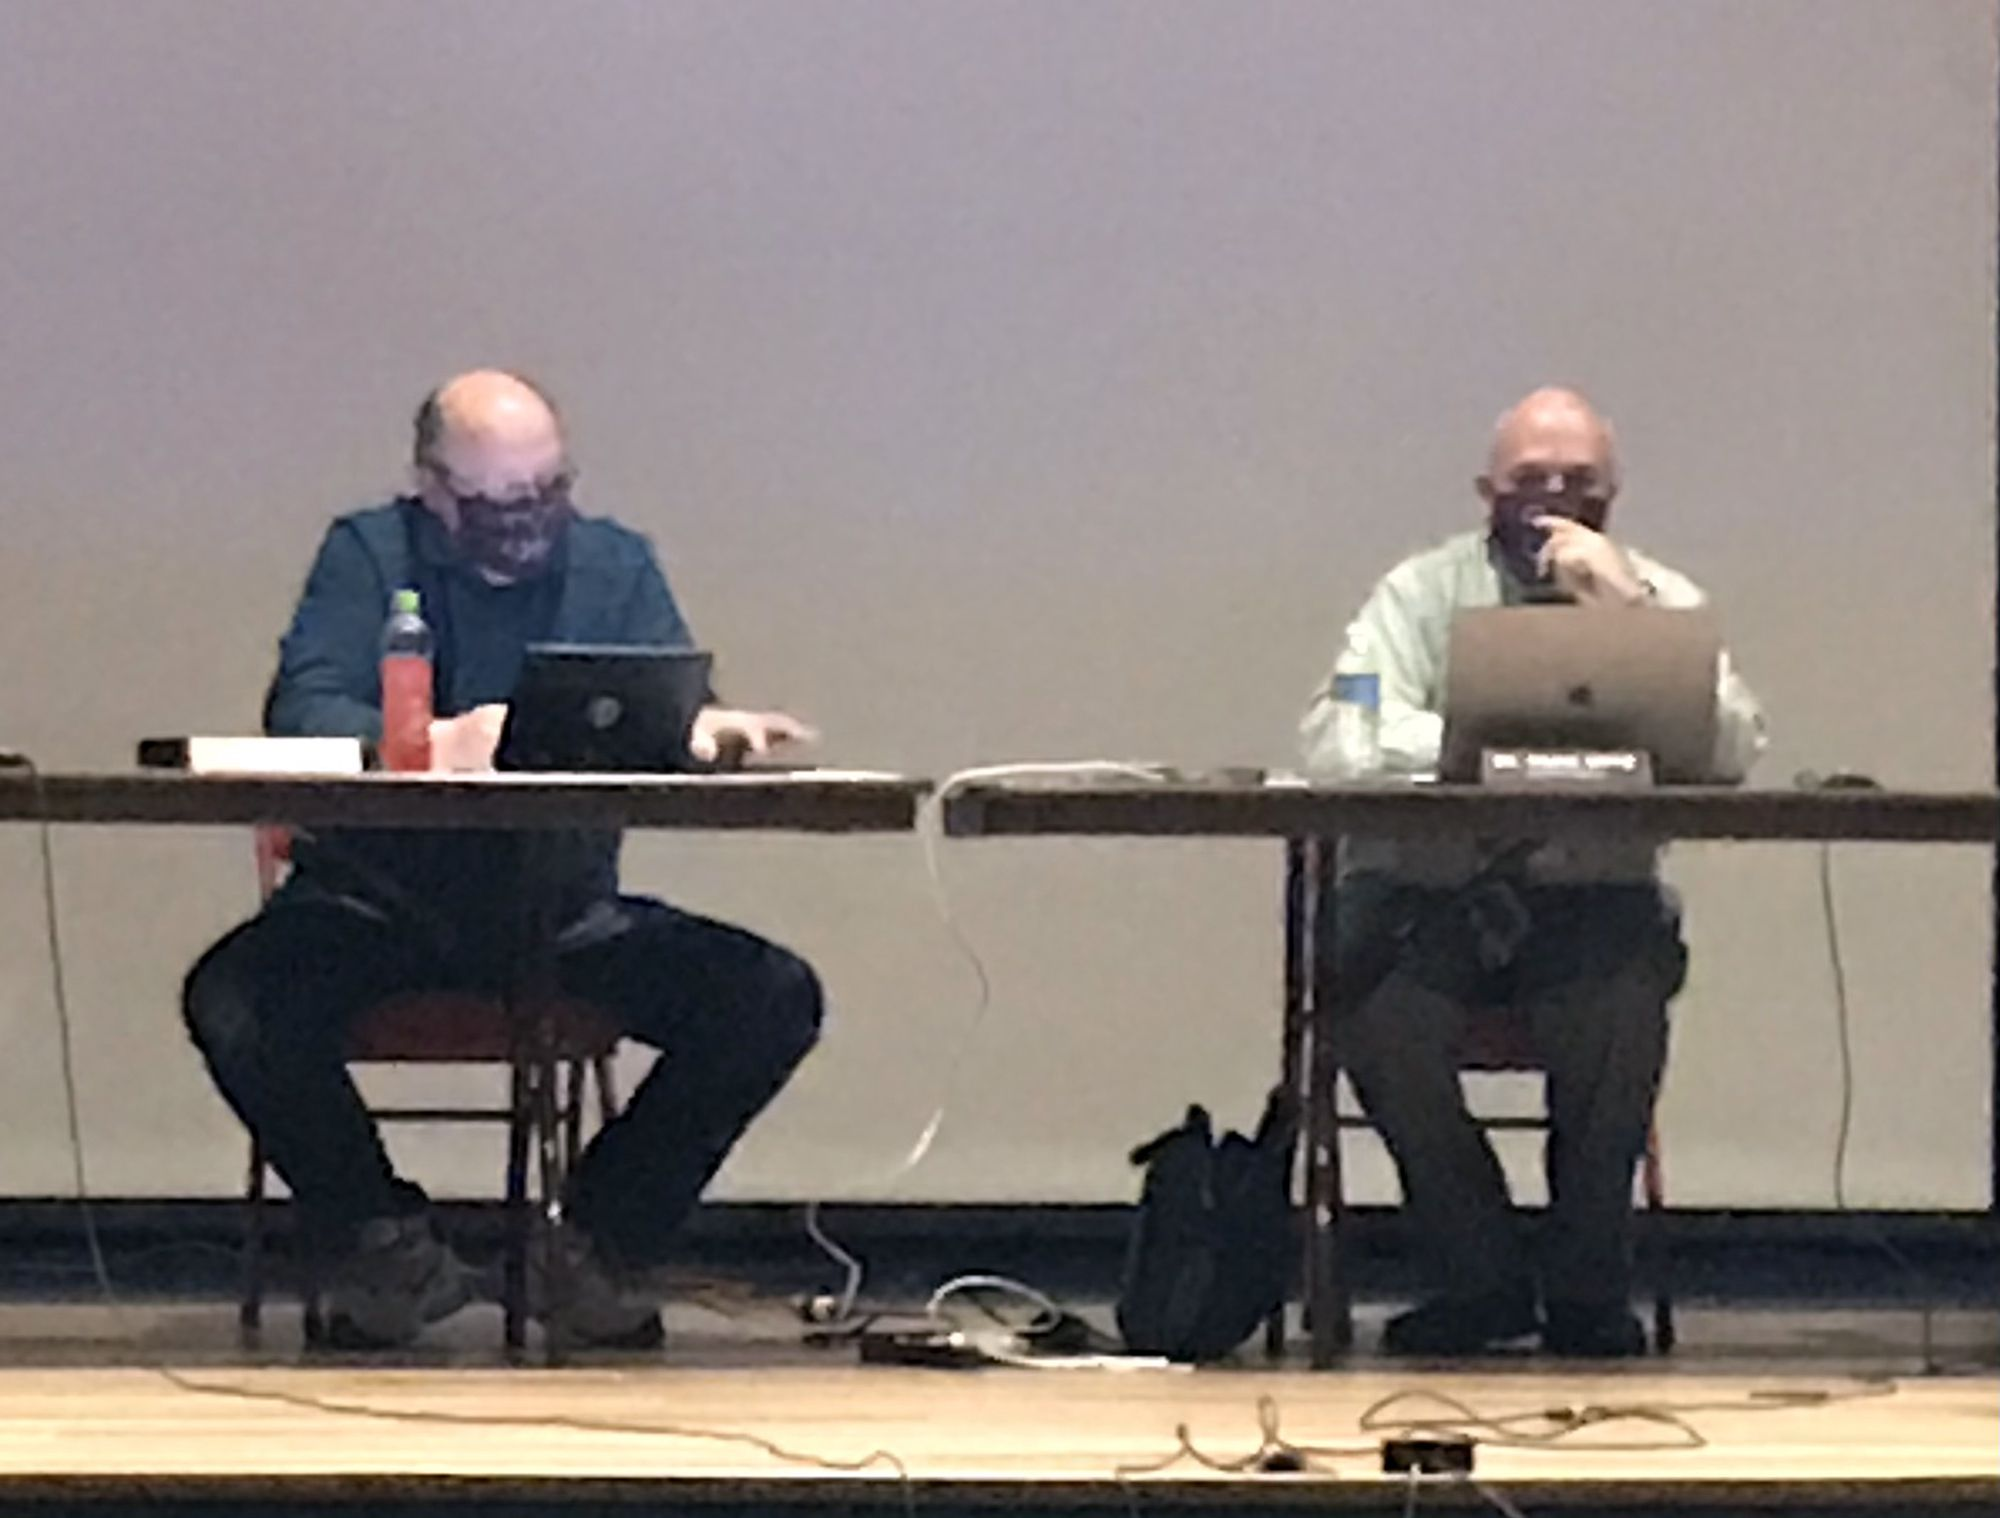 Morris Community High School District 101 Board President Scott Hastings (left) and Superintendent Craig Ortiz heard arguments Monday why the board should vote to change the school mascot.